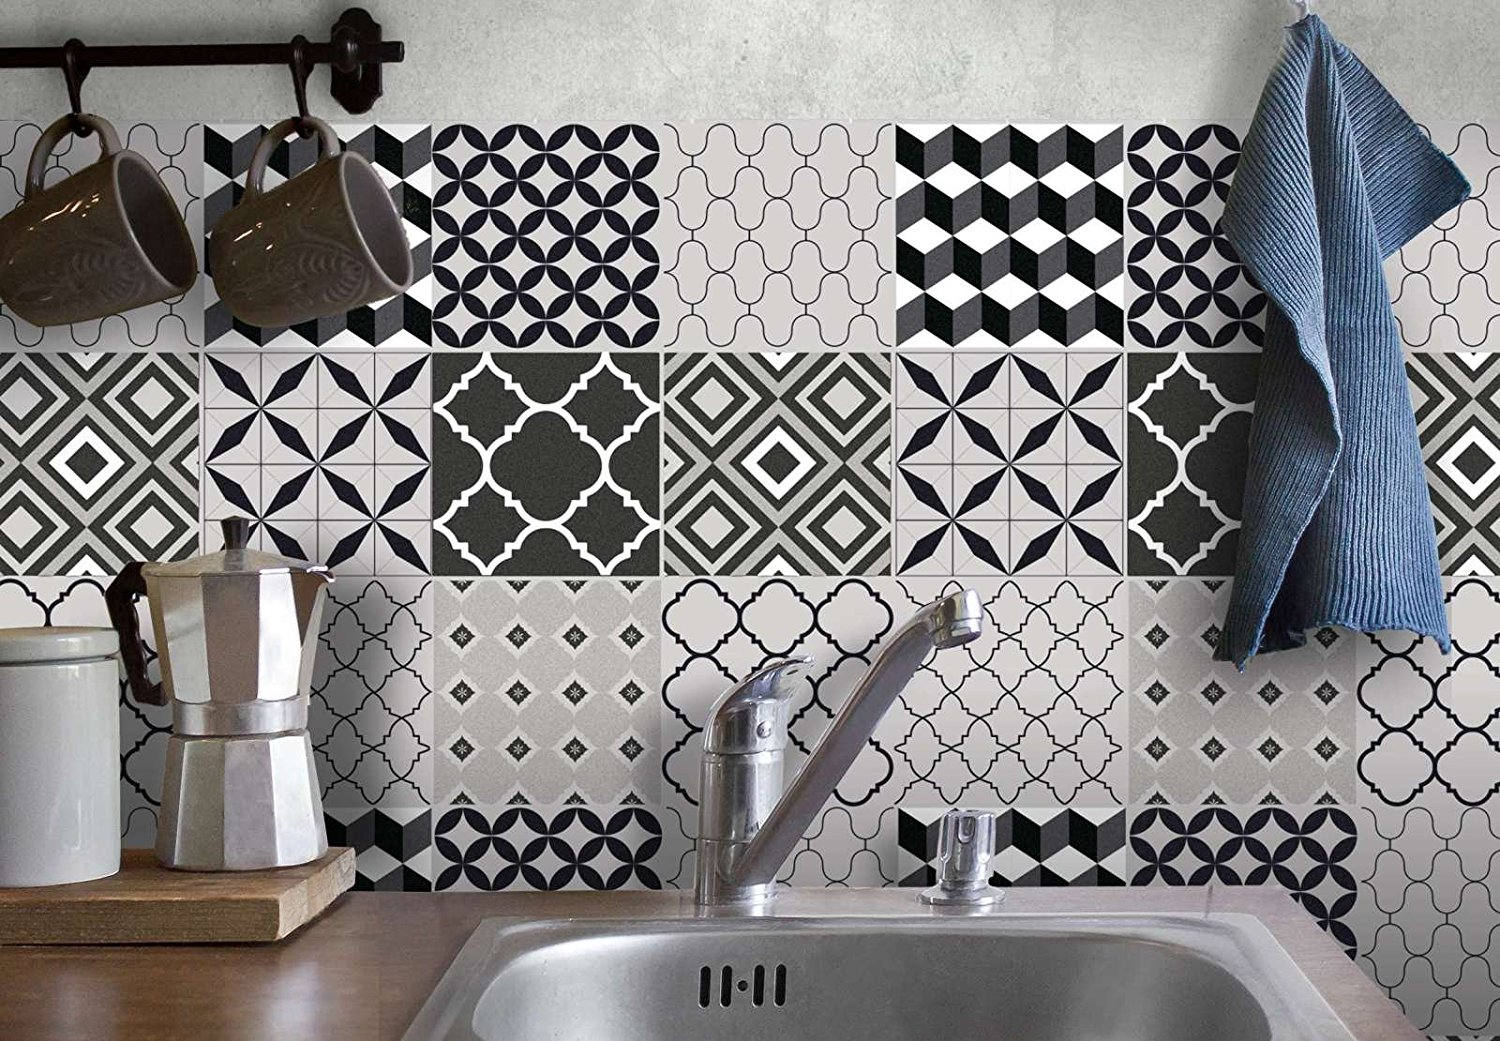 TILES DECALS Kitchen & Bathroom Sticker Tiles MOROCCAN Tile